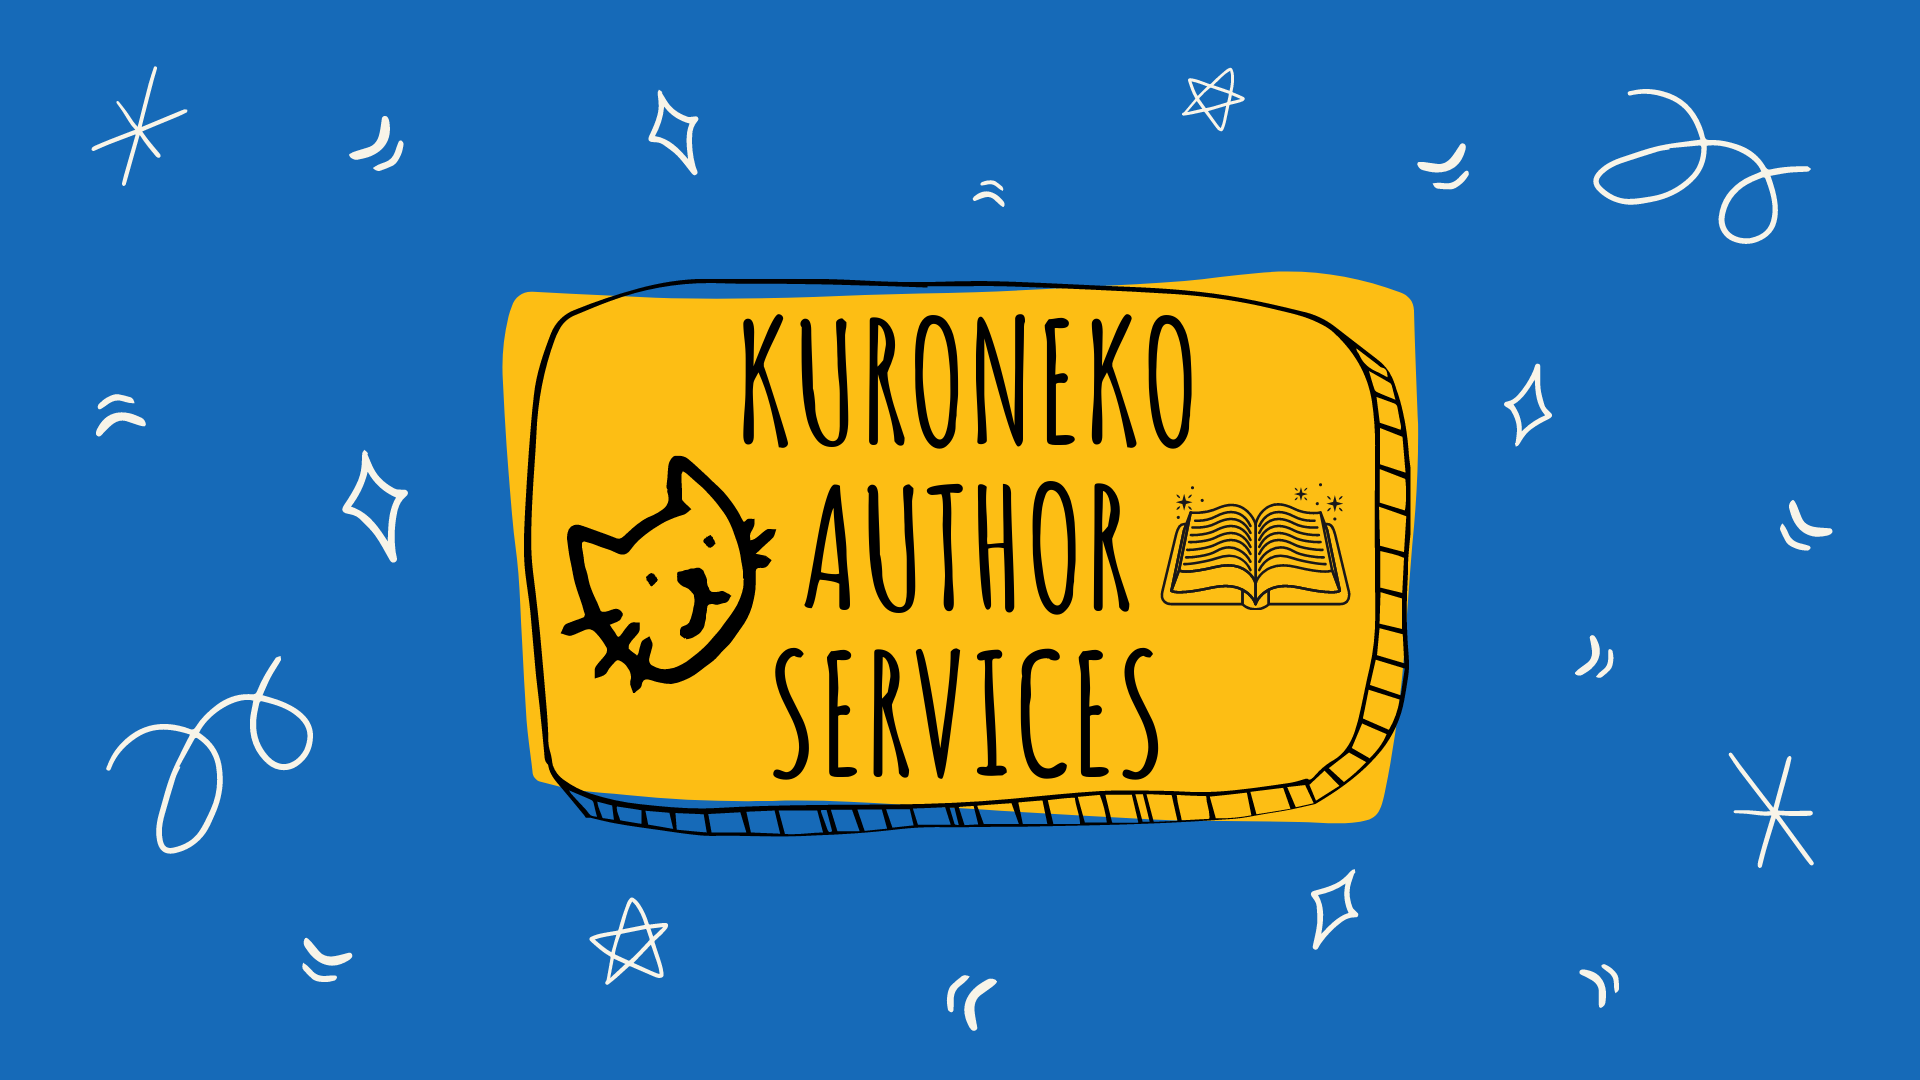 Kuroneko Author Services